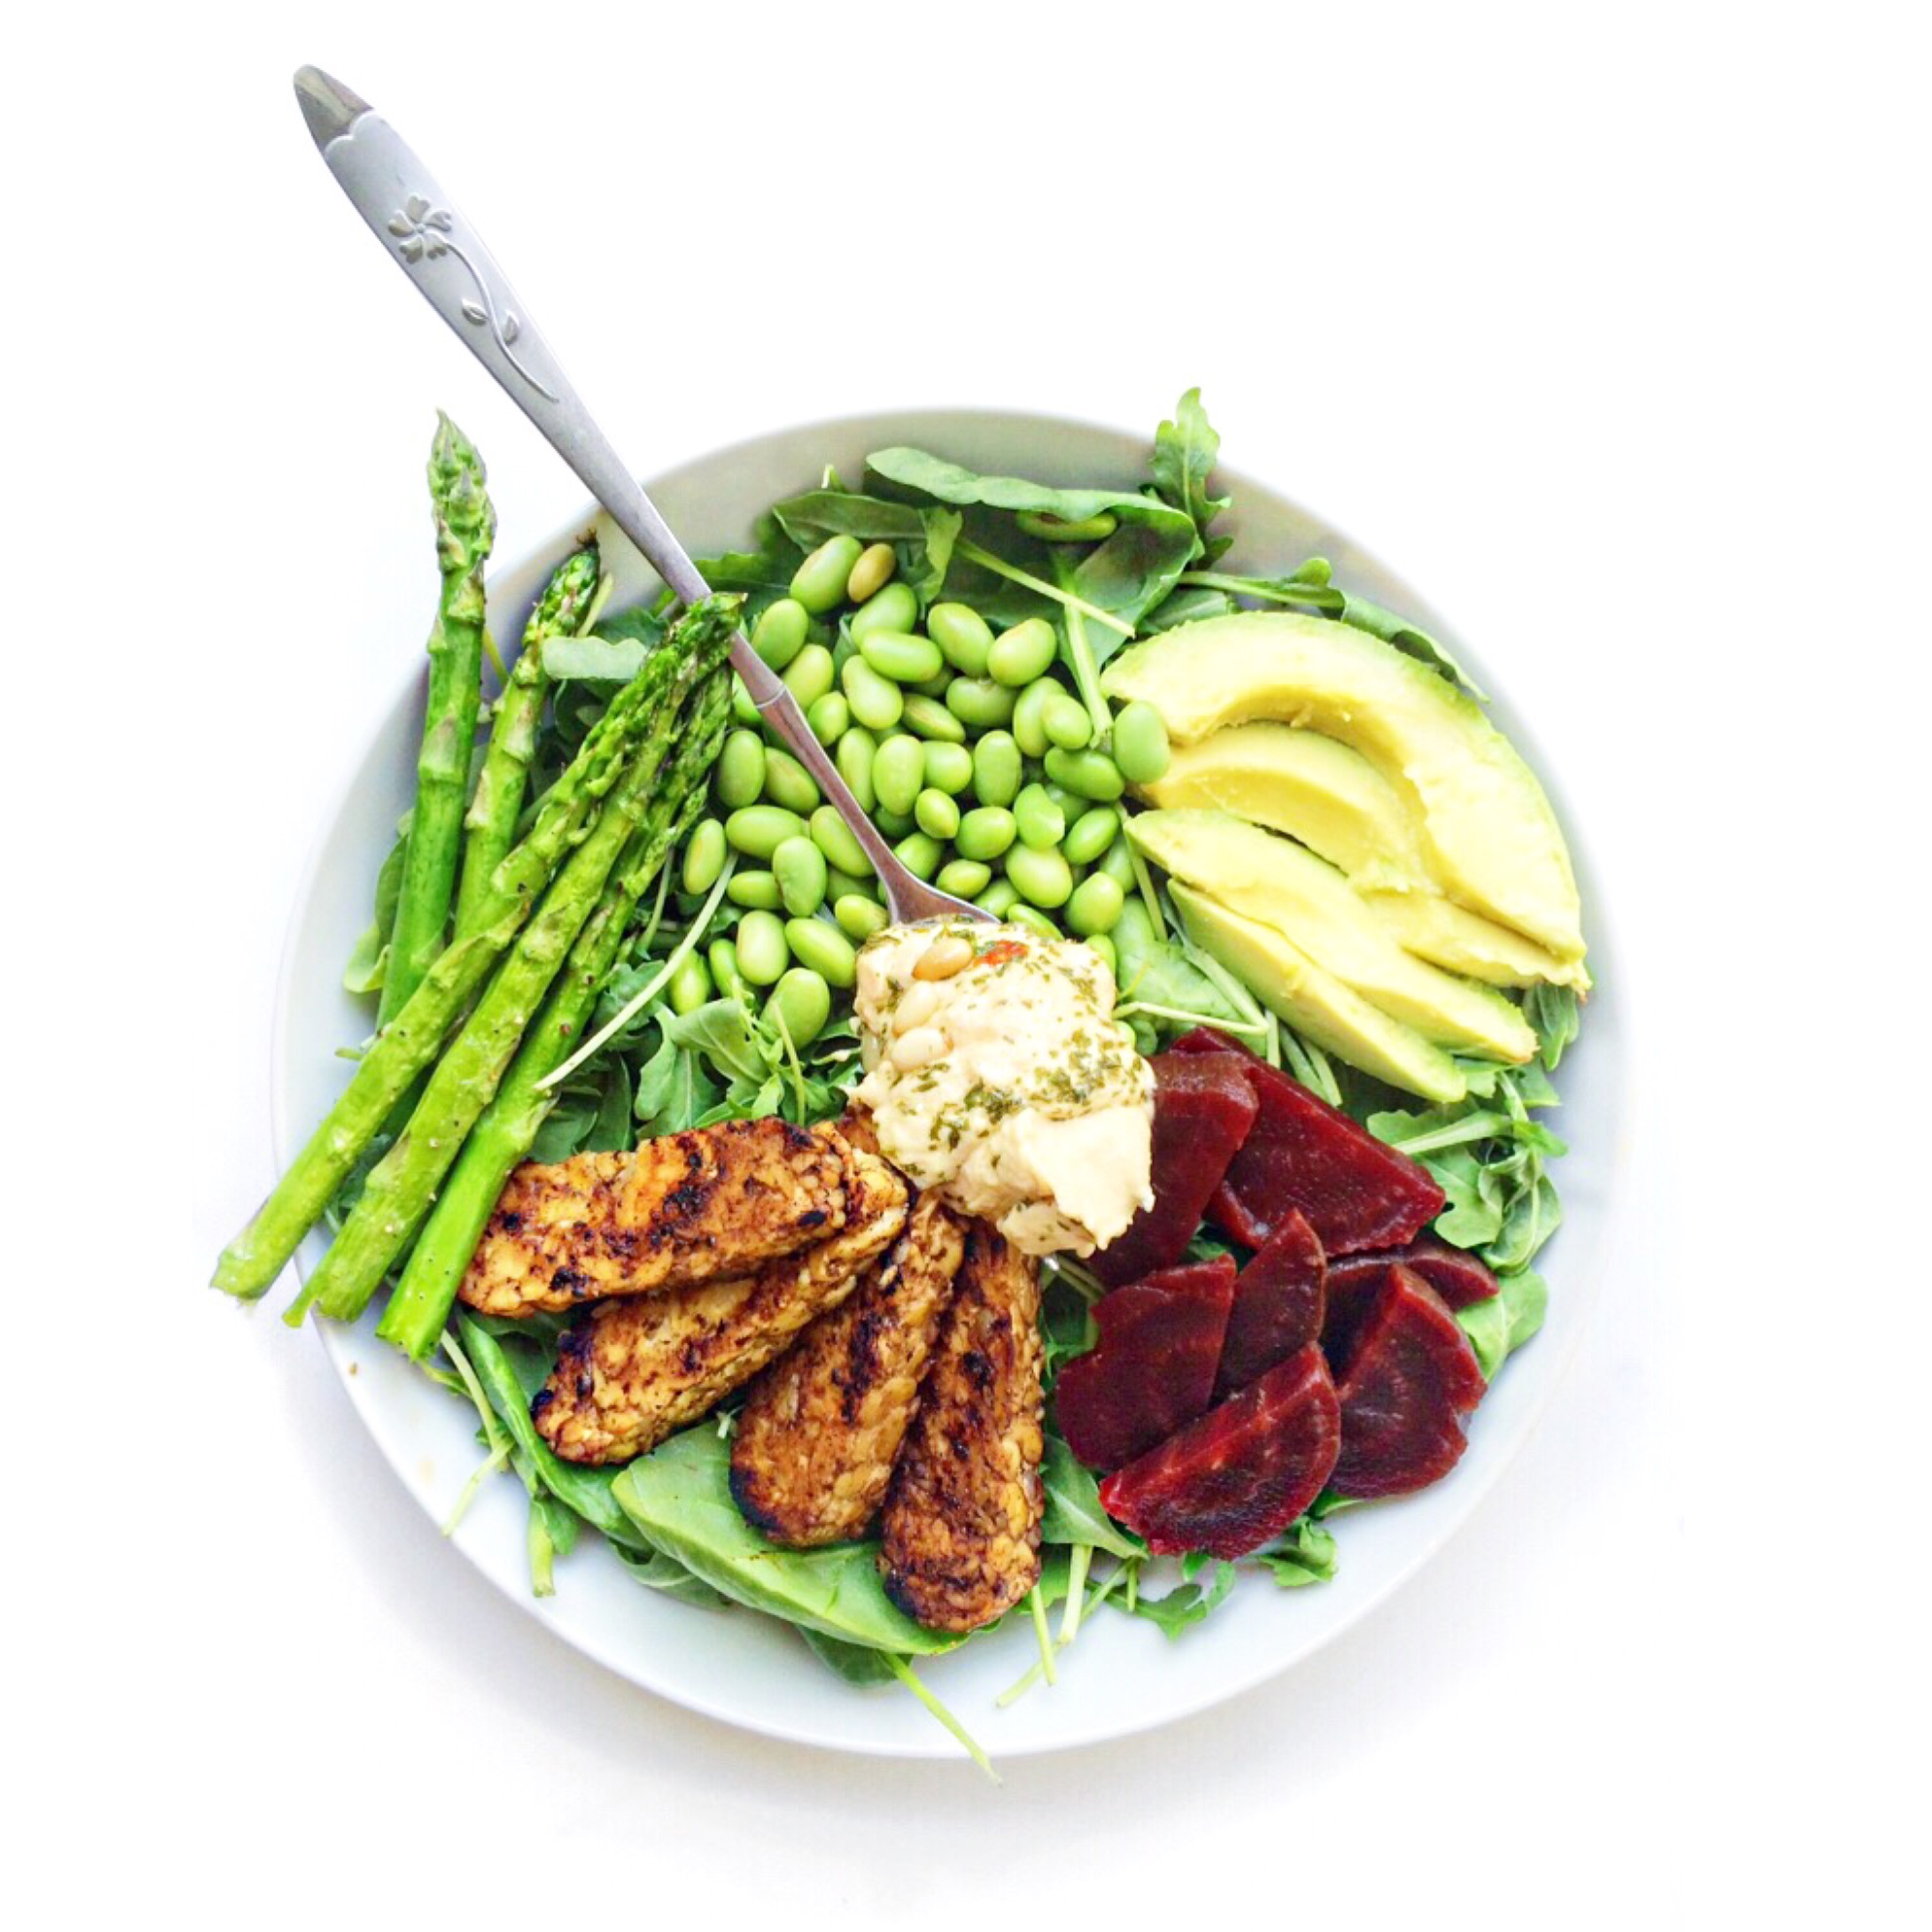 ... roasted beets + asparagus + avocado + edamame + Trader Joe's